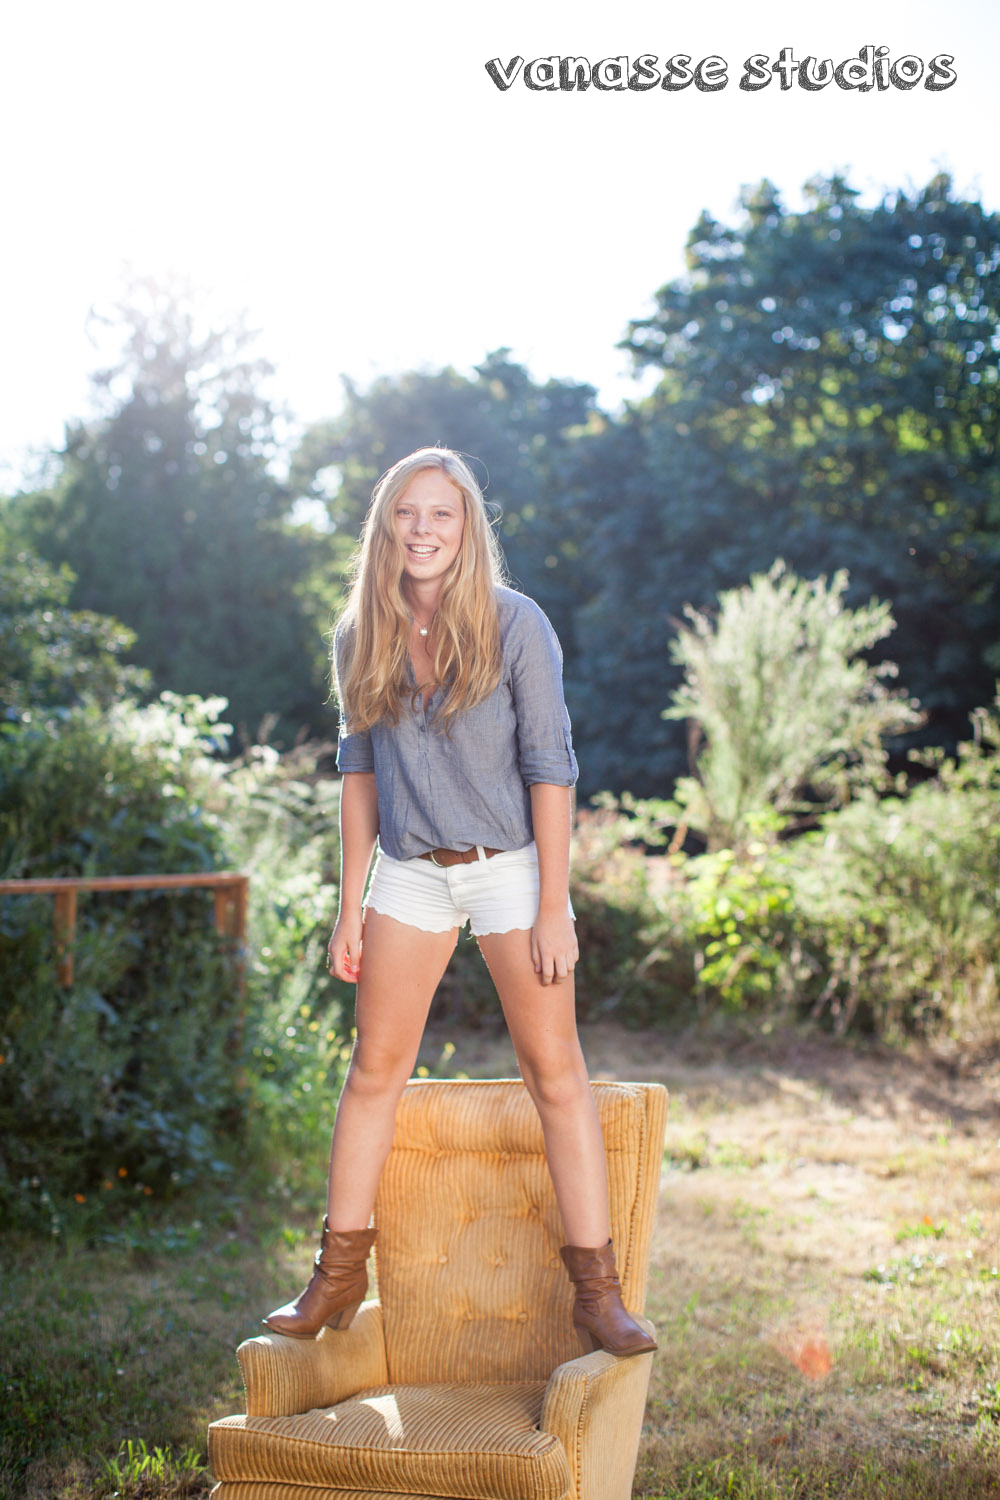 Bainbridge-Island-Senior-Photography-Riley-McCormick_008.jpg